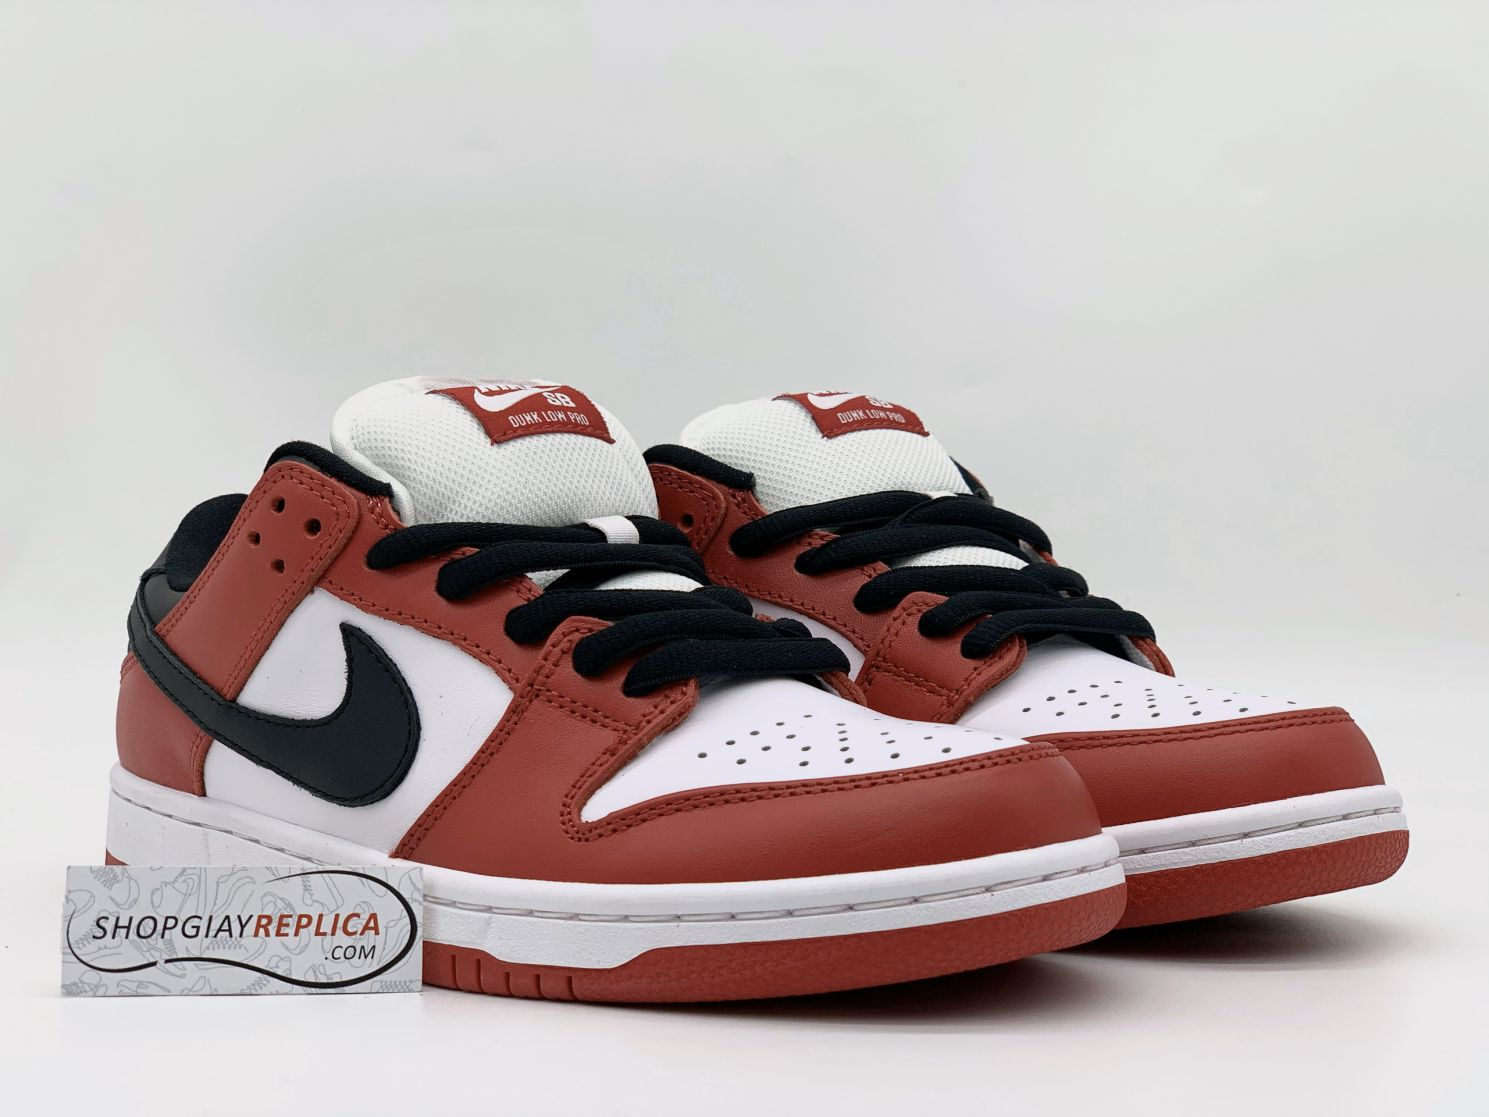 Nike SB Dunk Low J-Pack Chicago 1:1